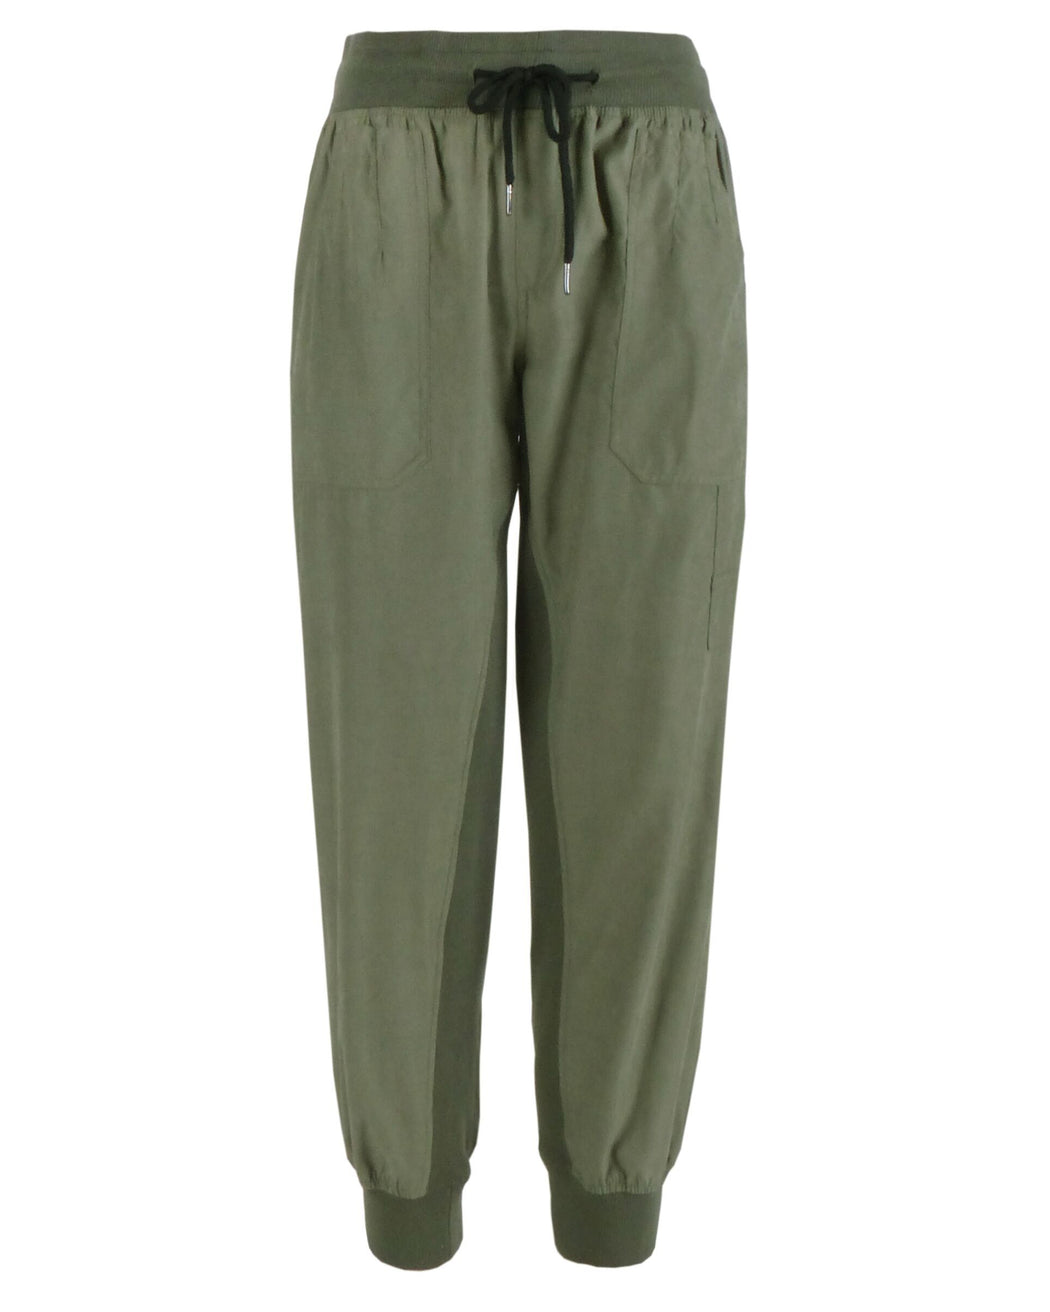 Ketz-ke Pristine Pant Khaki | Shop Ketz-ke at Wallace and Gibbs